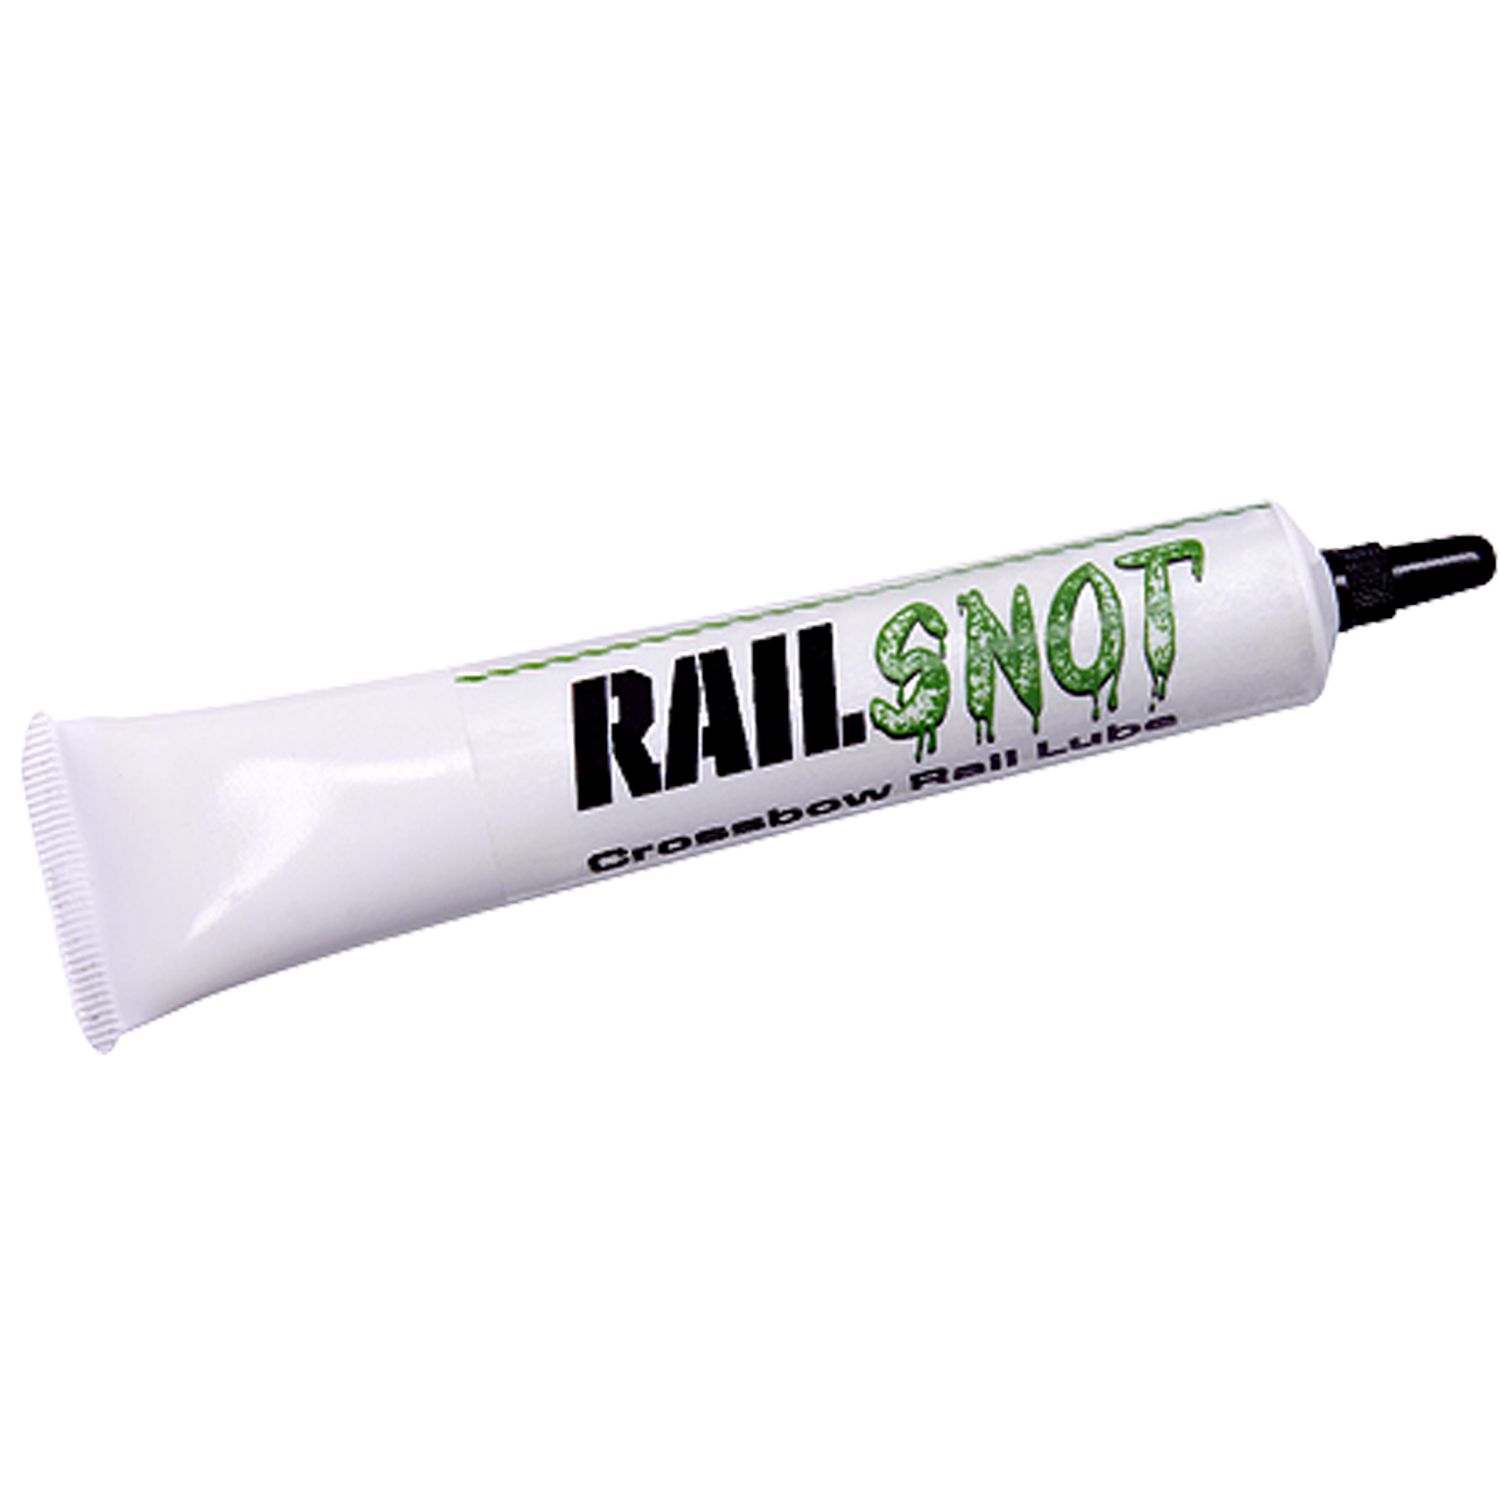 3006 Outdoors Rail Snot Crossbow Rail Lube thumbnail